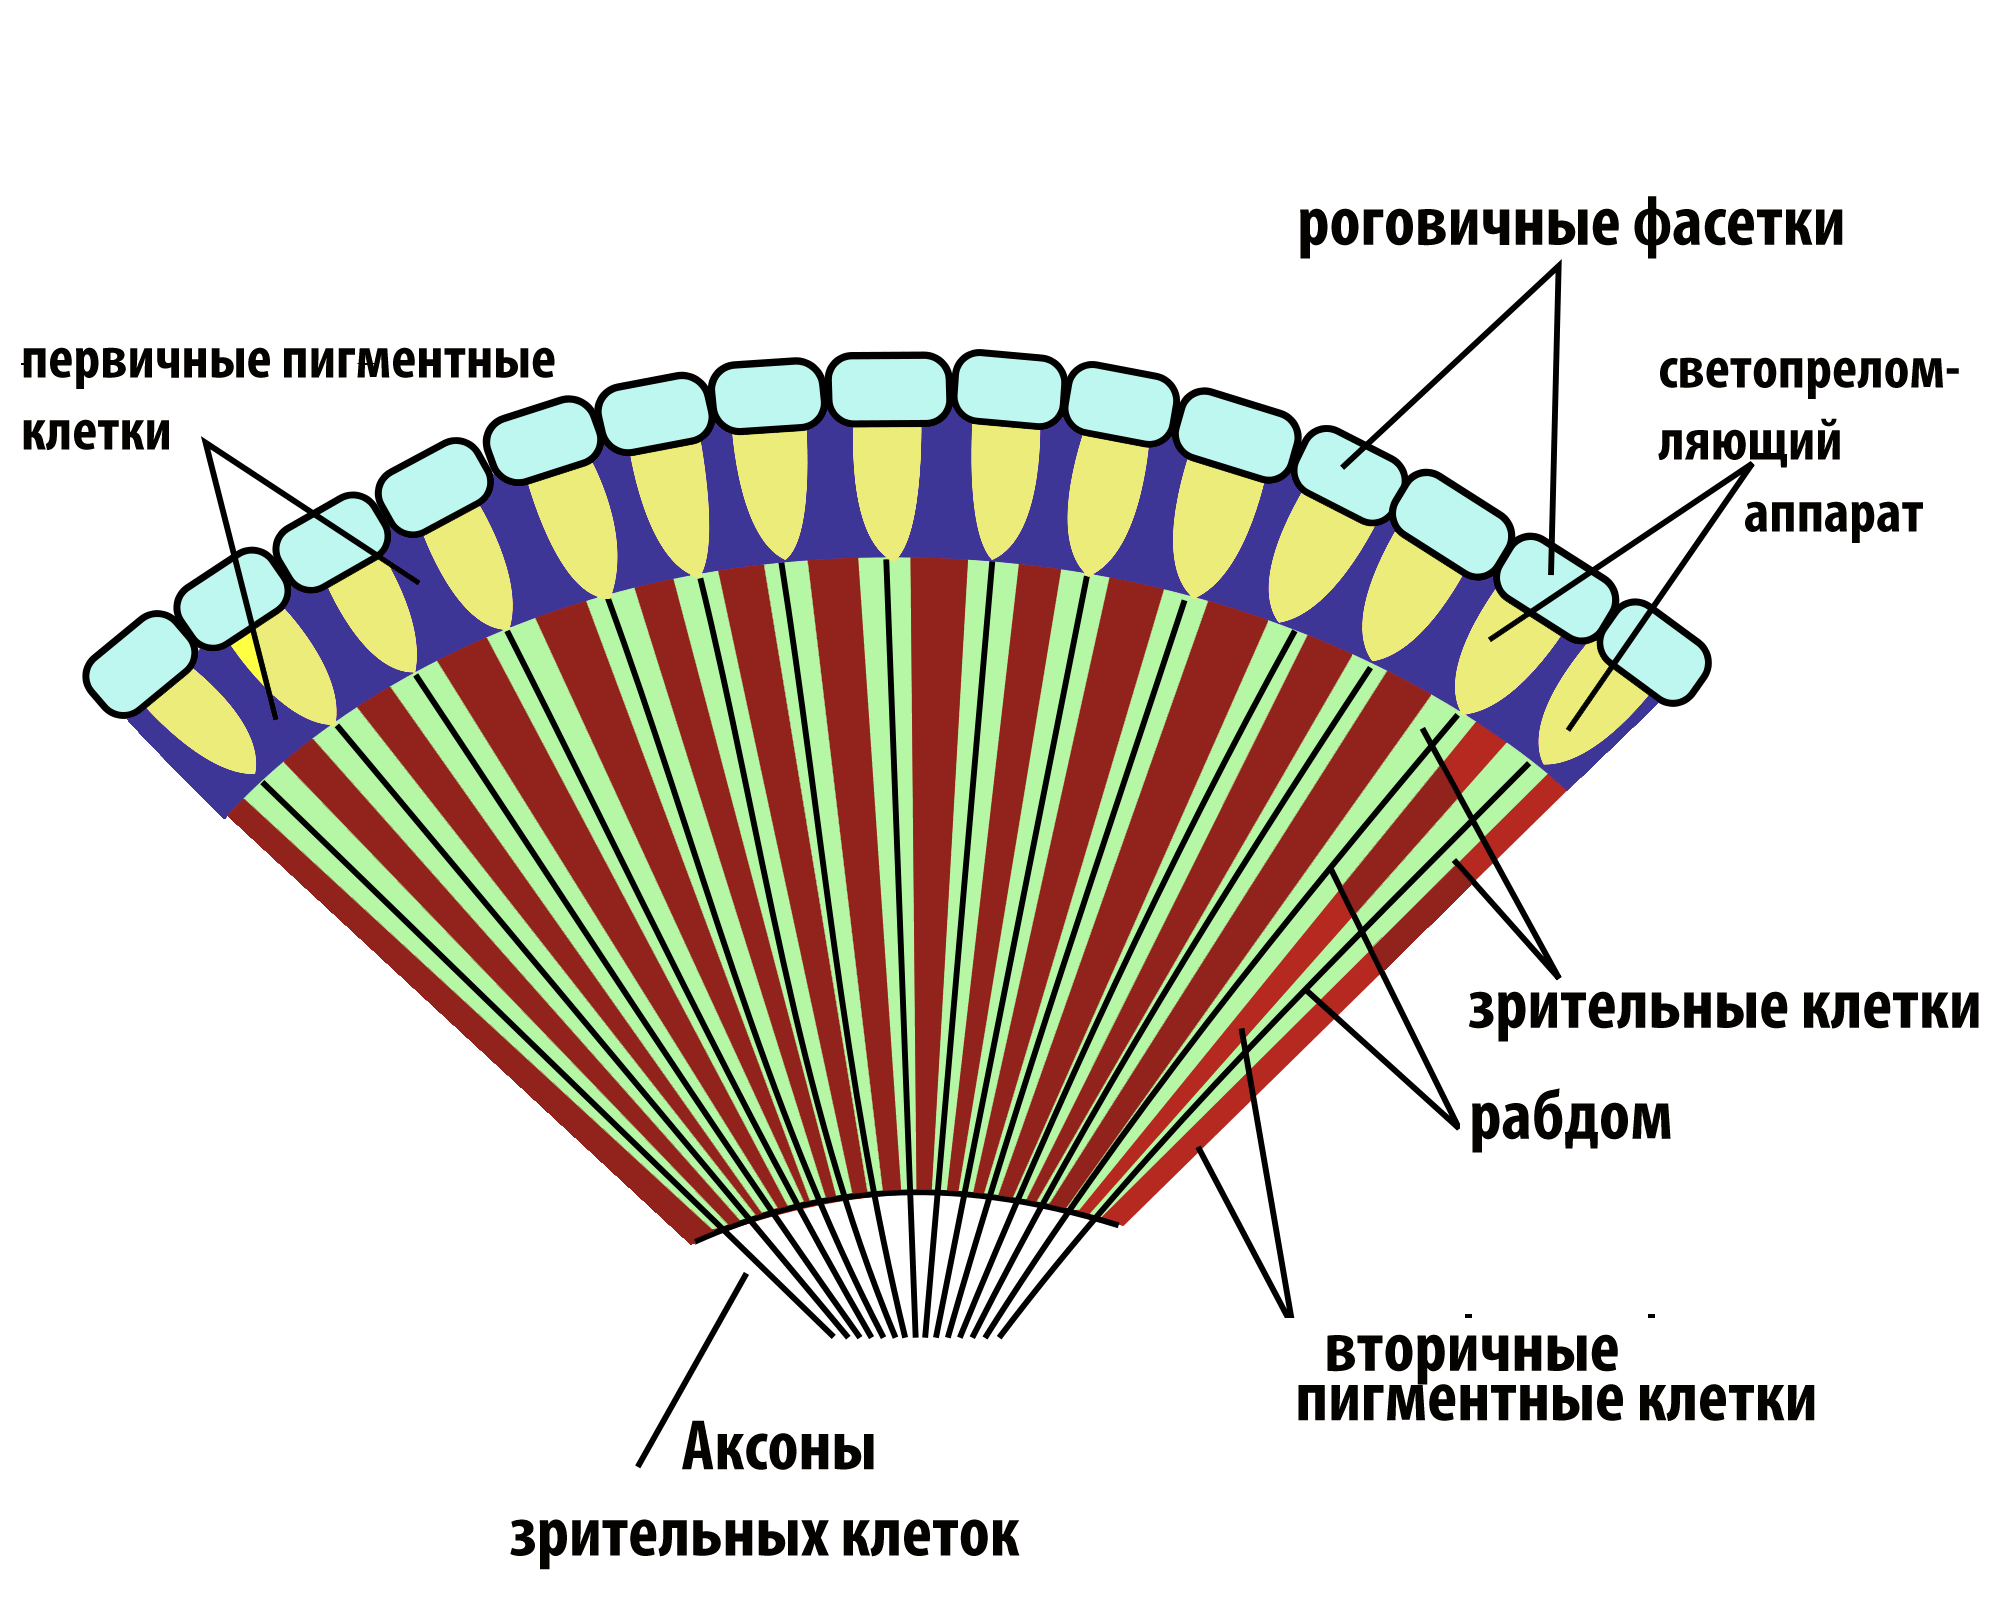 hight resolution of file insect compound eye diagram rus png